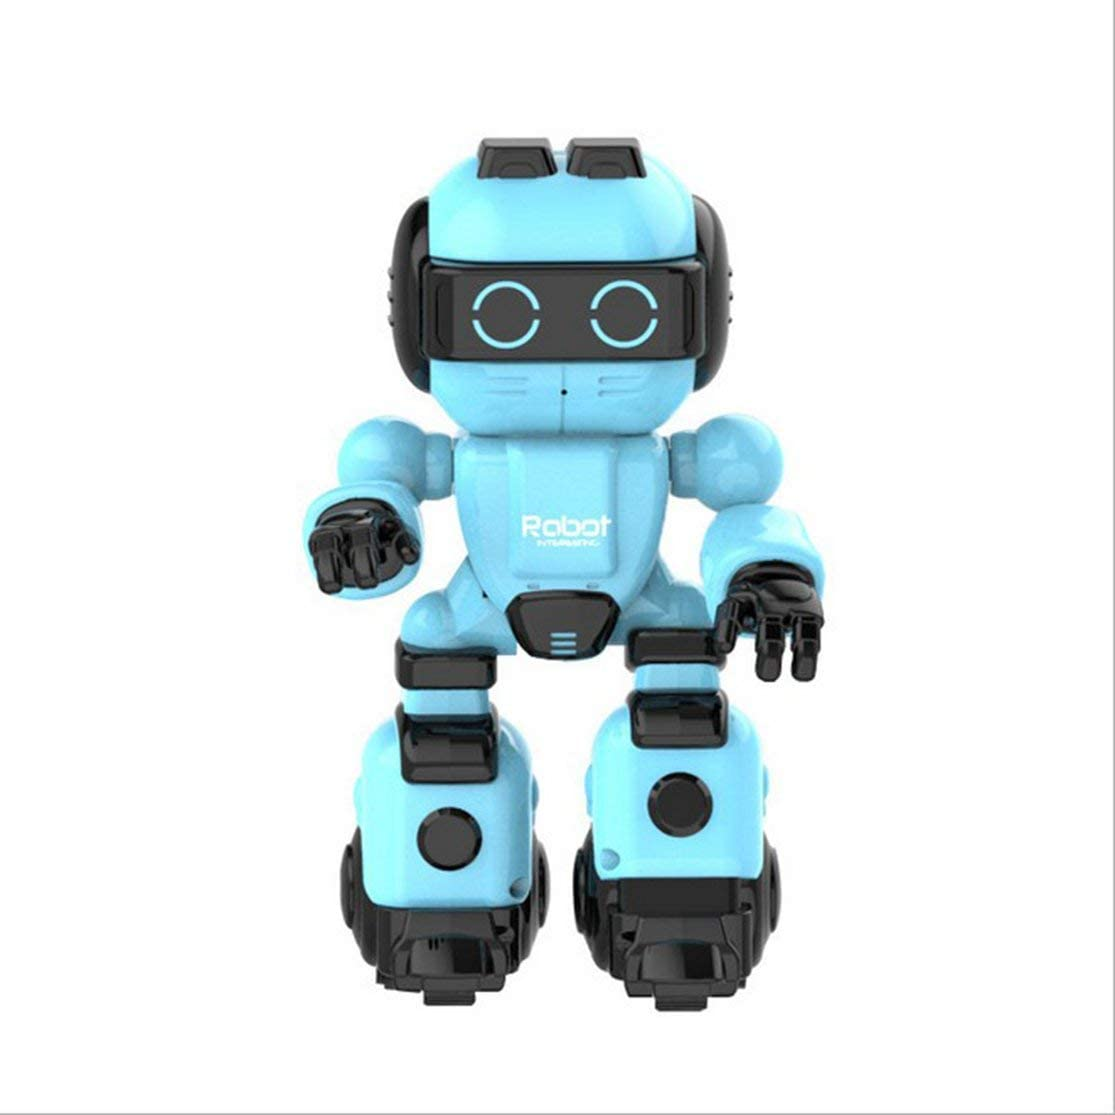 LouiseEvel215 Mando a Distancia para niños Inteligente Puzzle Story Dancing Cute Pet Companion Robot Boy Girl Toy Máquina de educación temprana: Amazon.es: Hogar